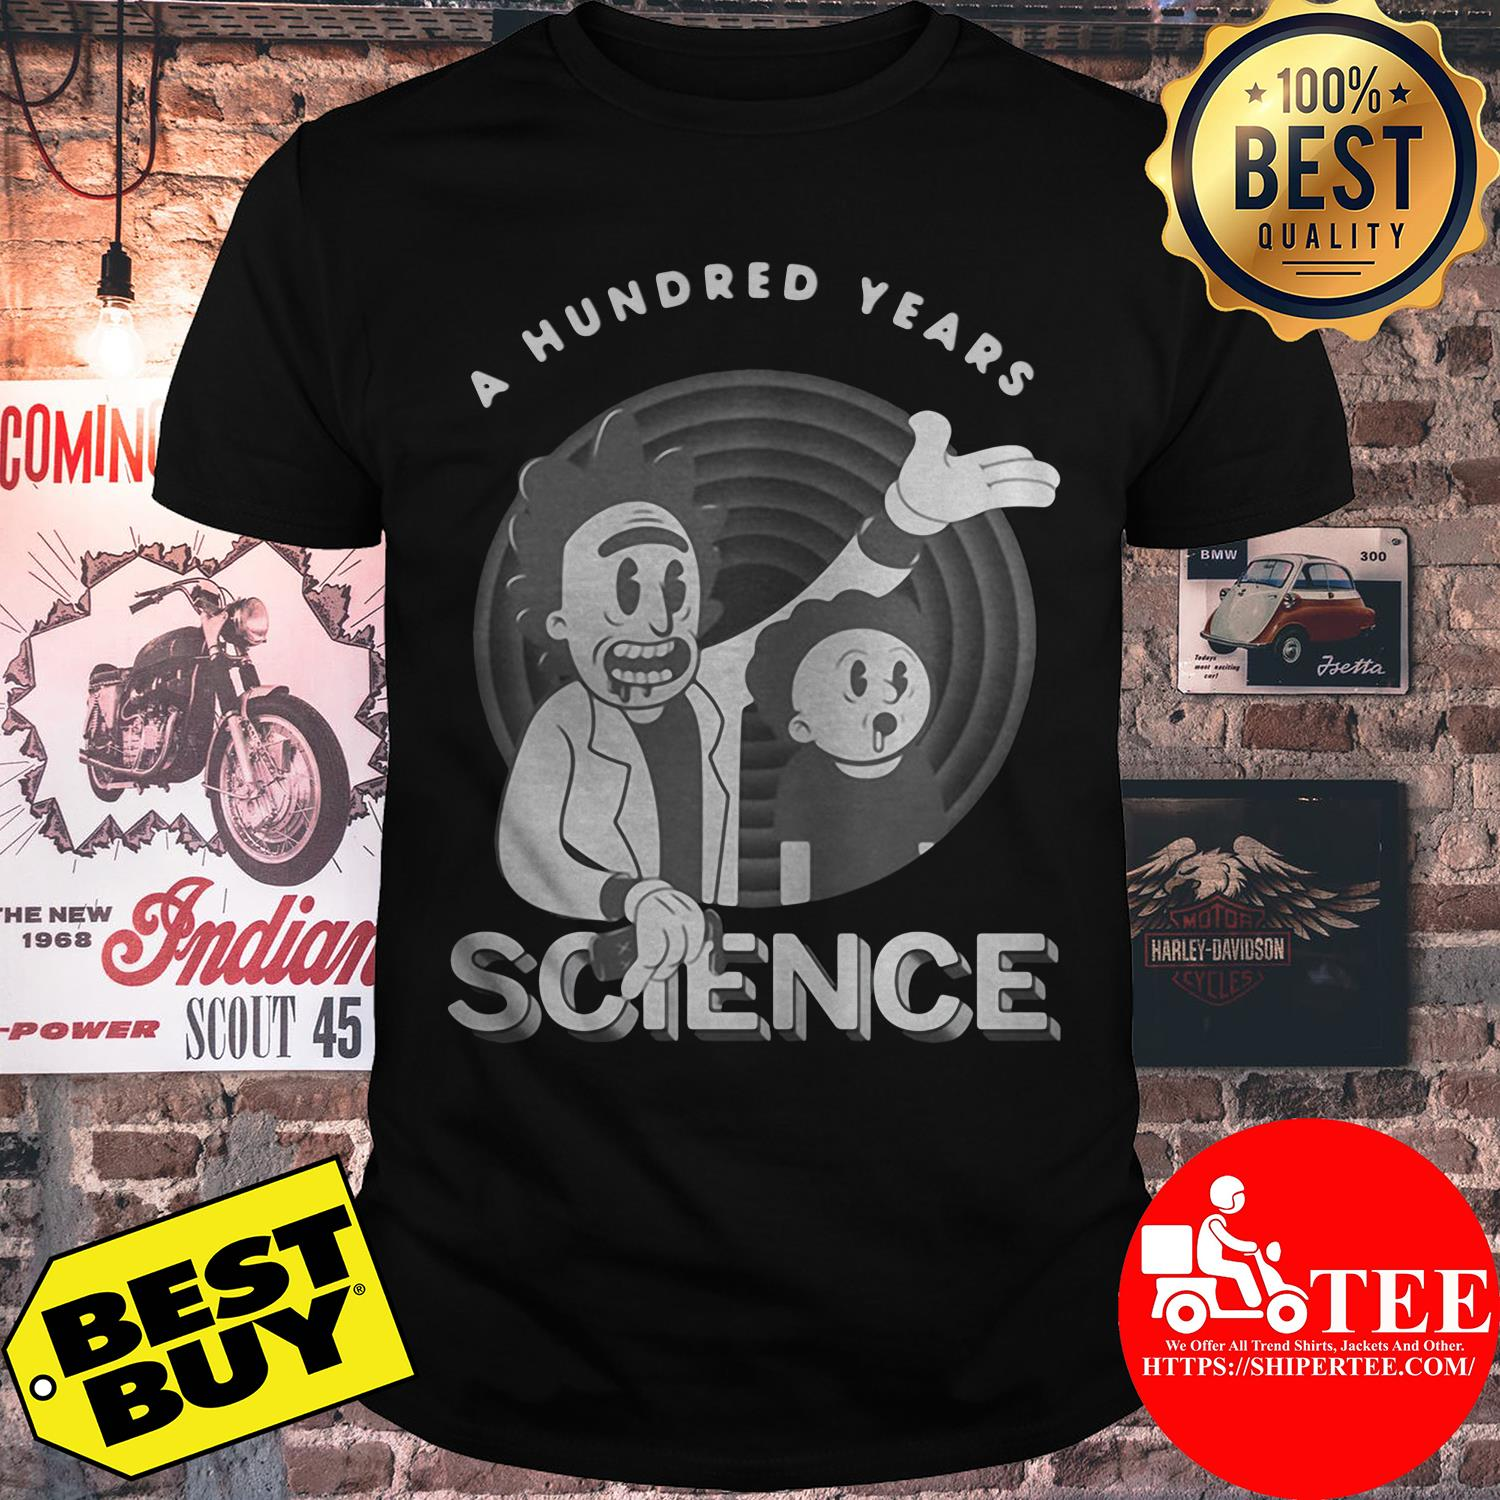 Rick and Morty a hundred years science shirt